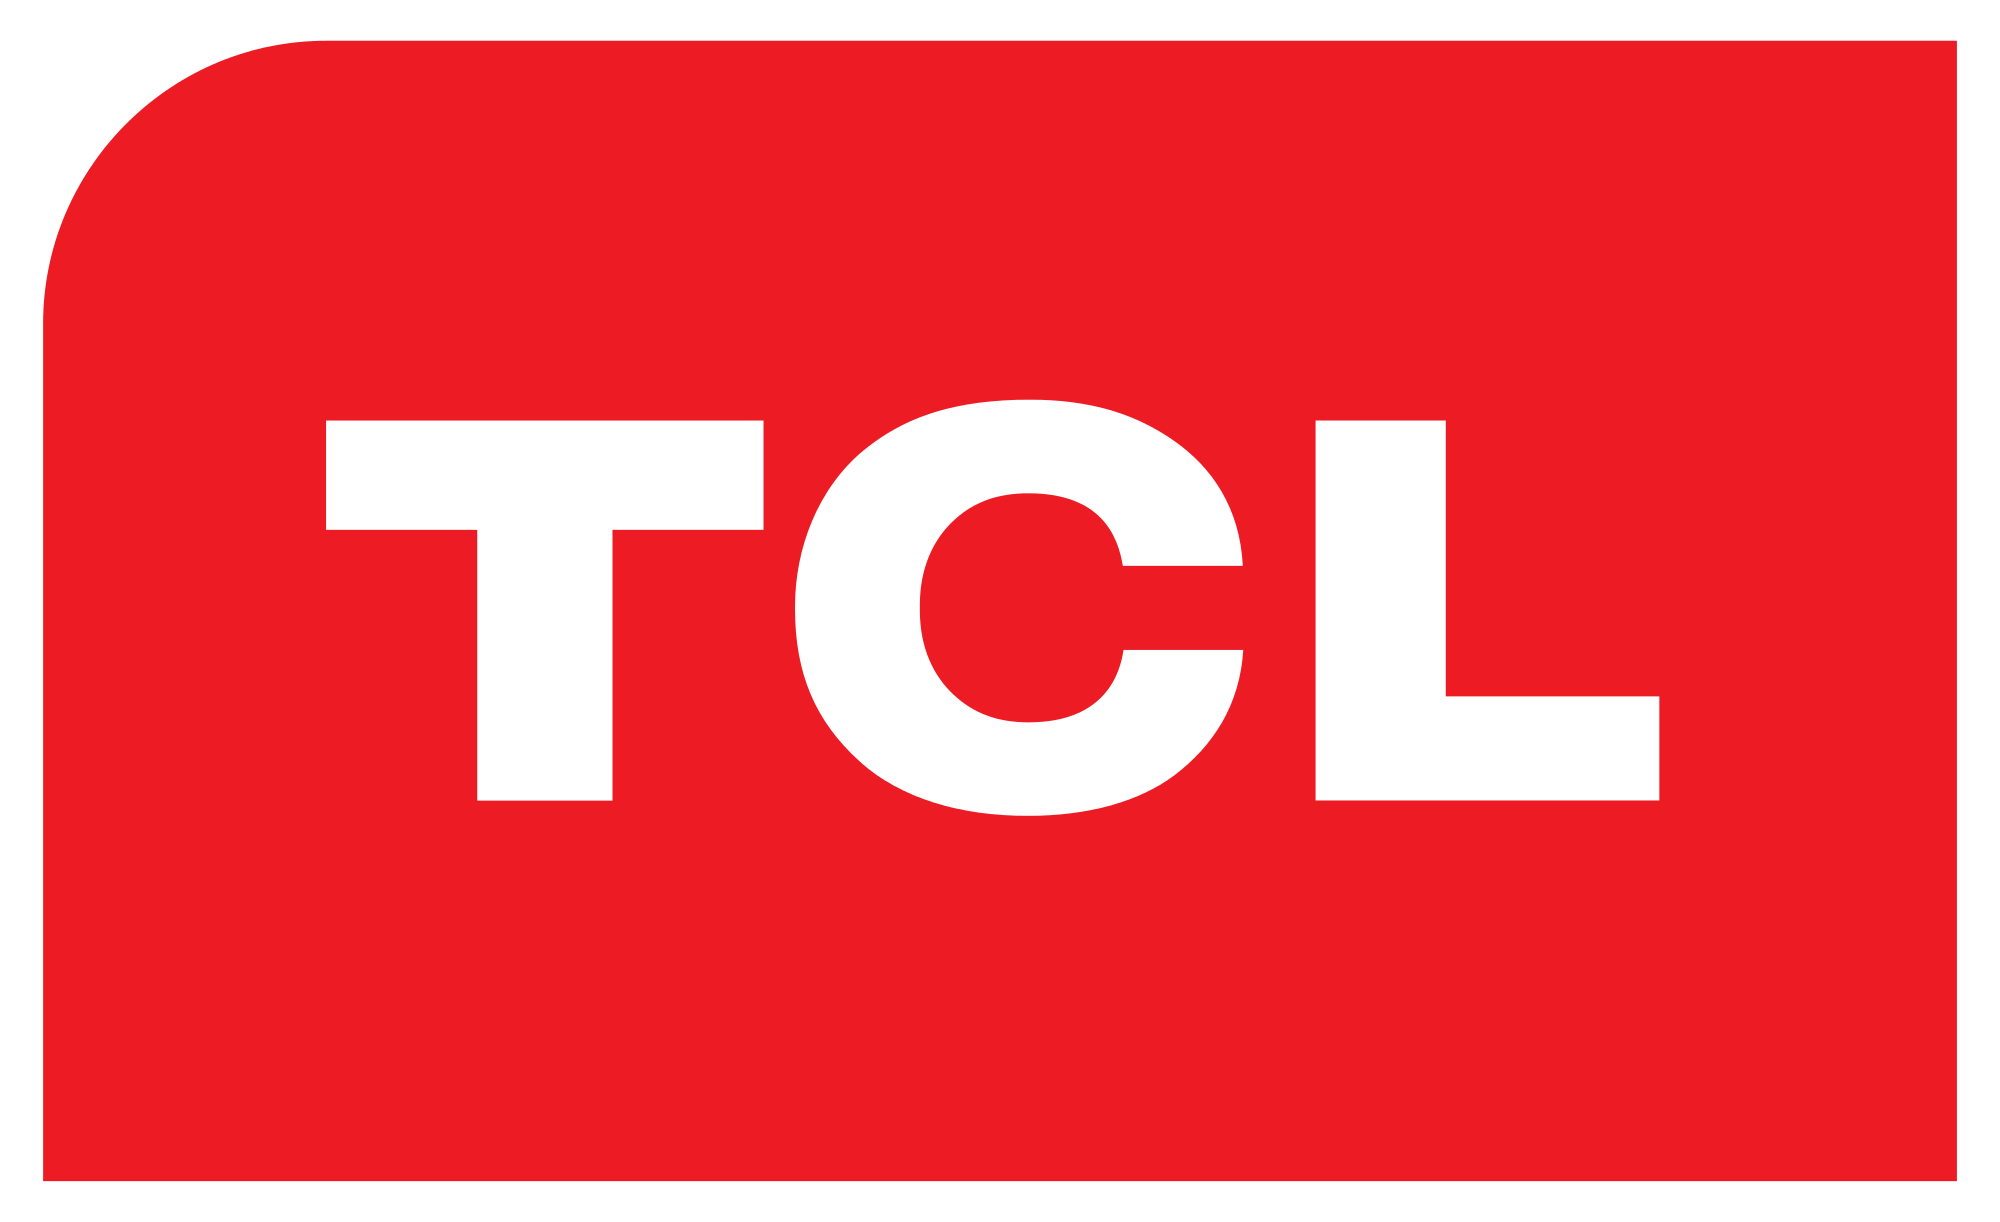 Xiaomi Formally Invests In Tcl Over 65 Million Shares